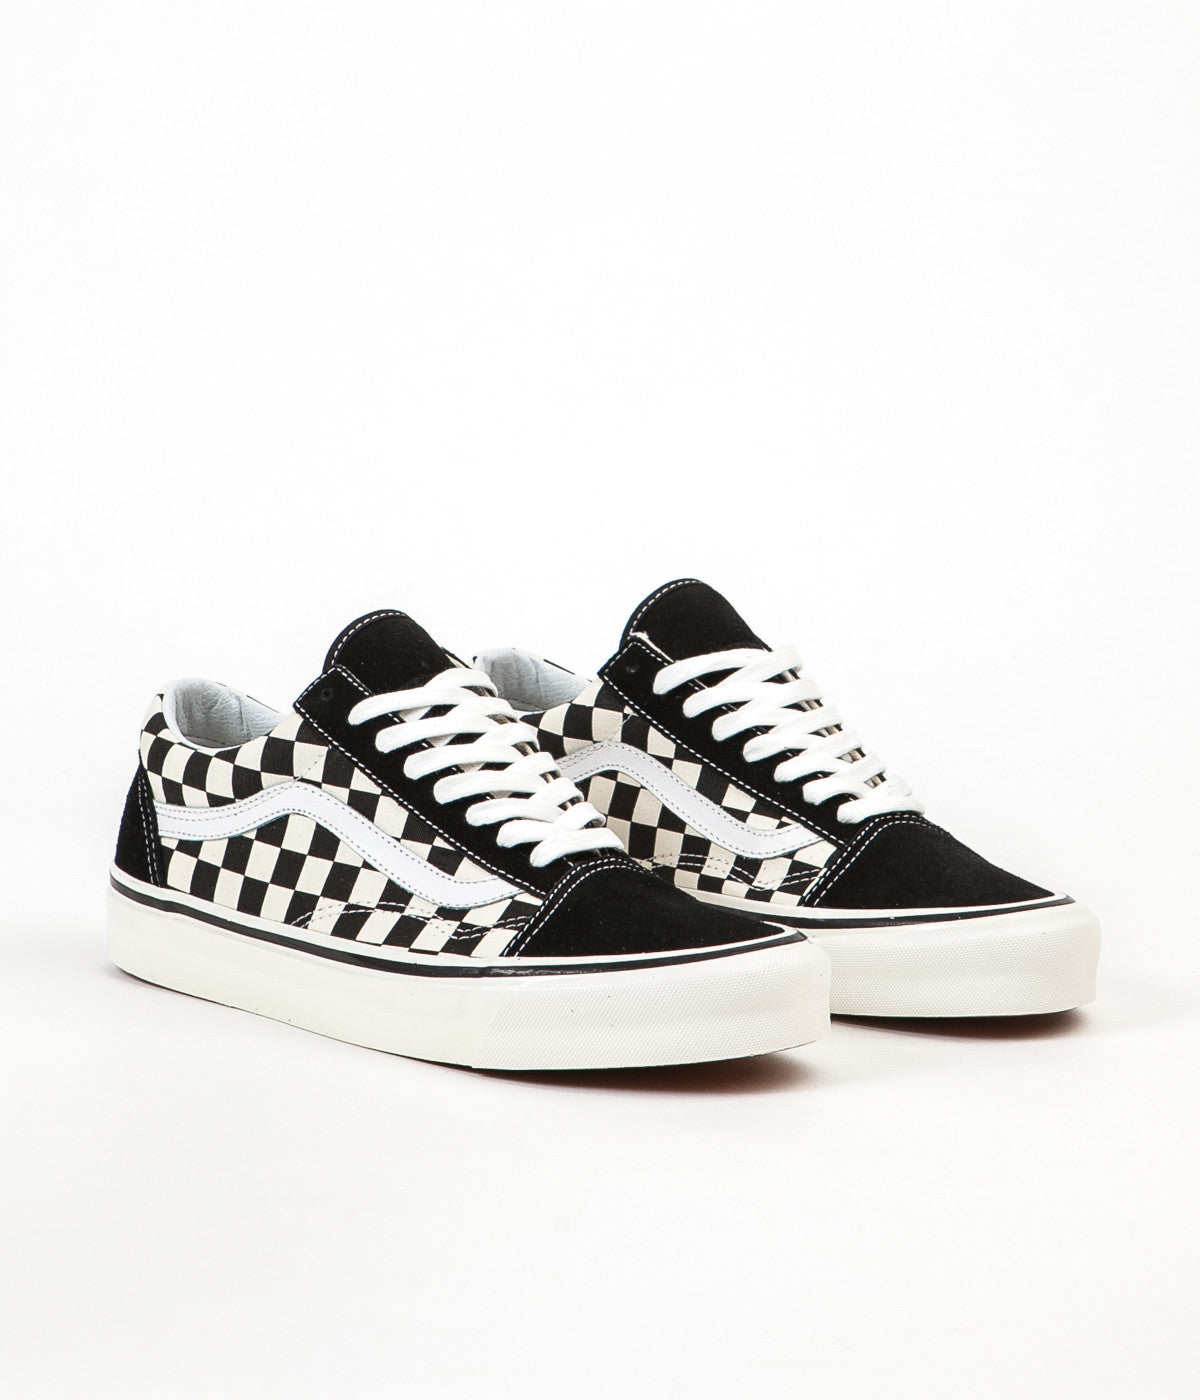 8df128fb49 ... Vans Old Skool 36 DX Anaheim Factory Shoes - Black   Check ...